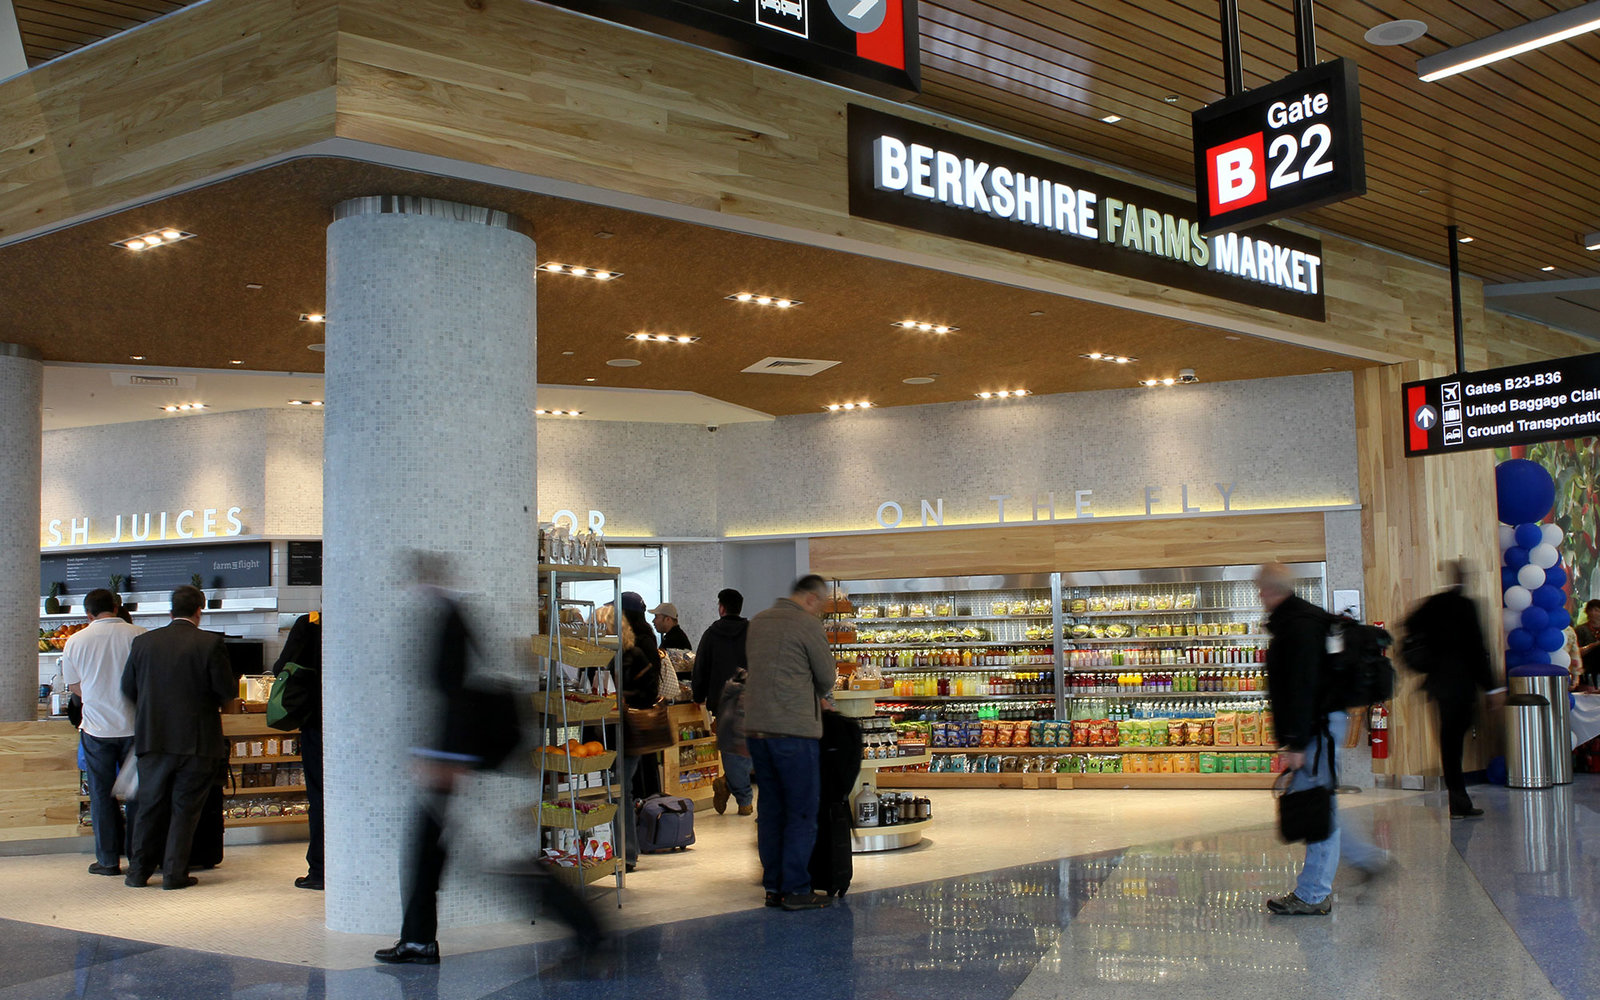 BOSTON - APRIL 30: Berkshire Farms Market opening day at Logan Airport, Terminal B. This store has fresh foods, some from the Berkshires, some local. (Photo by Joanne Rathe/The Boston Globe via Getty Images)